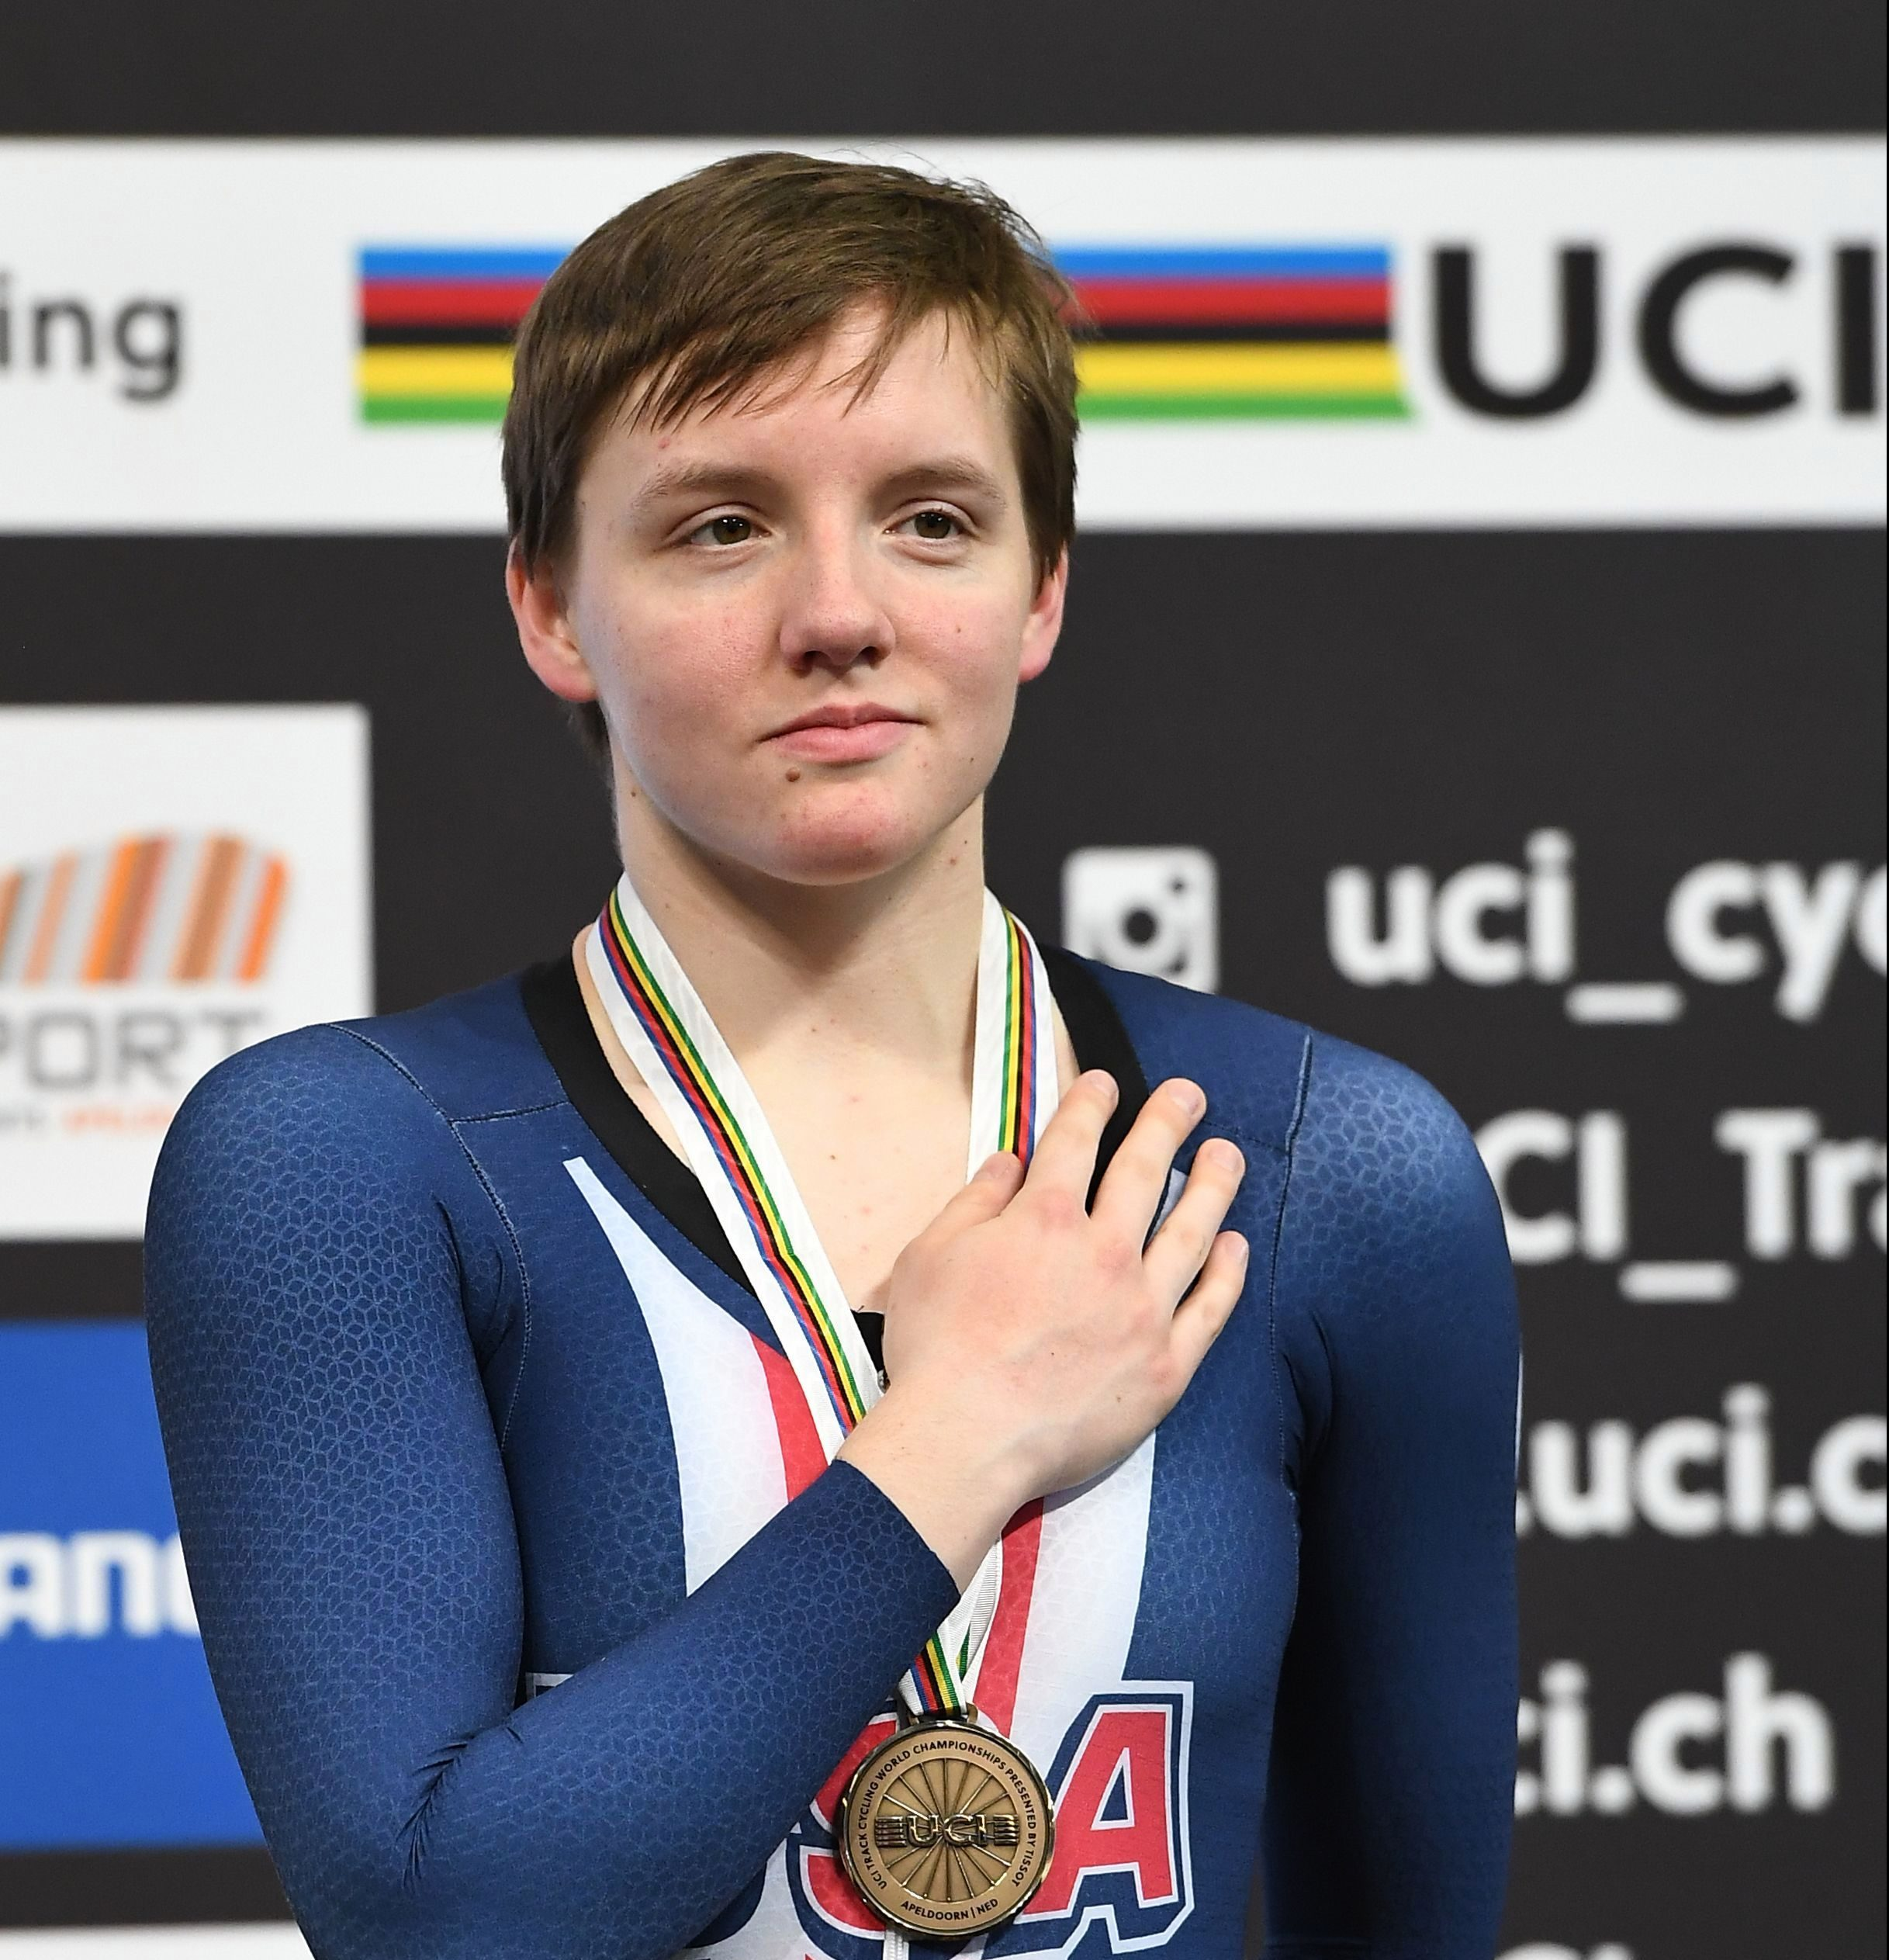 Kelly Catlin was one of the world's top female cyclists and an Olympic medallist